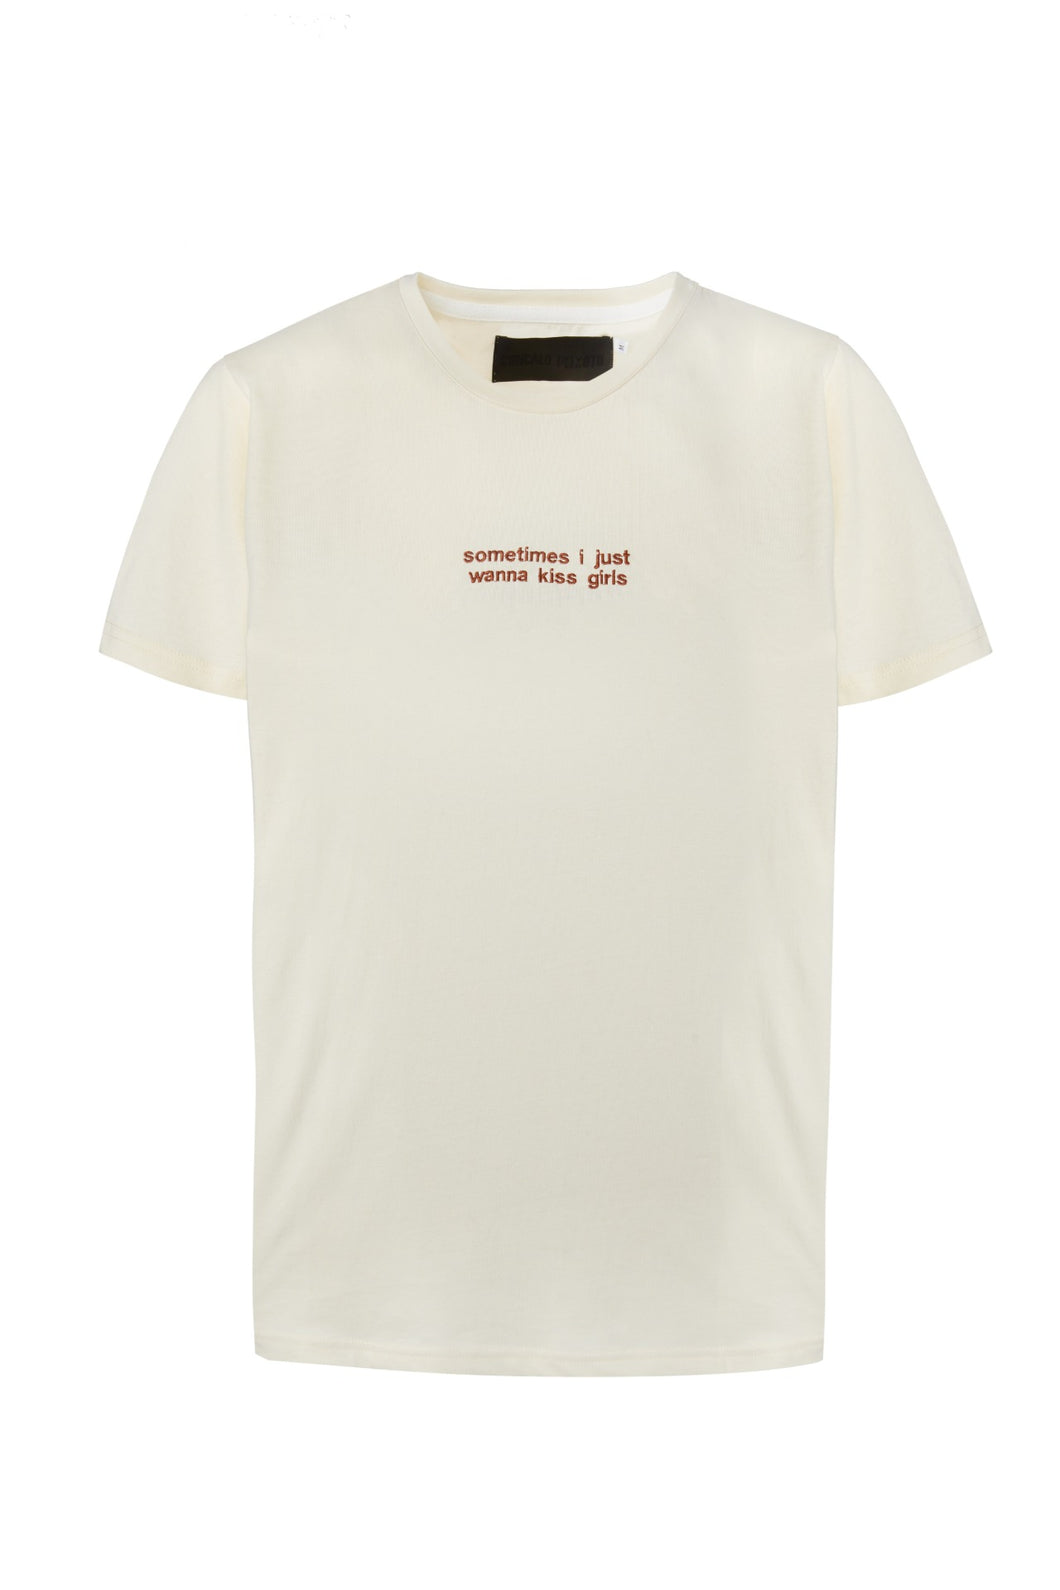 Nude T-shirt Embroidery